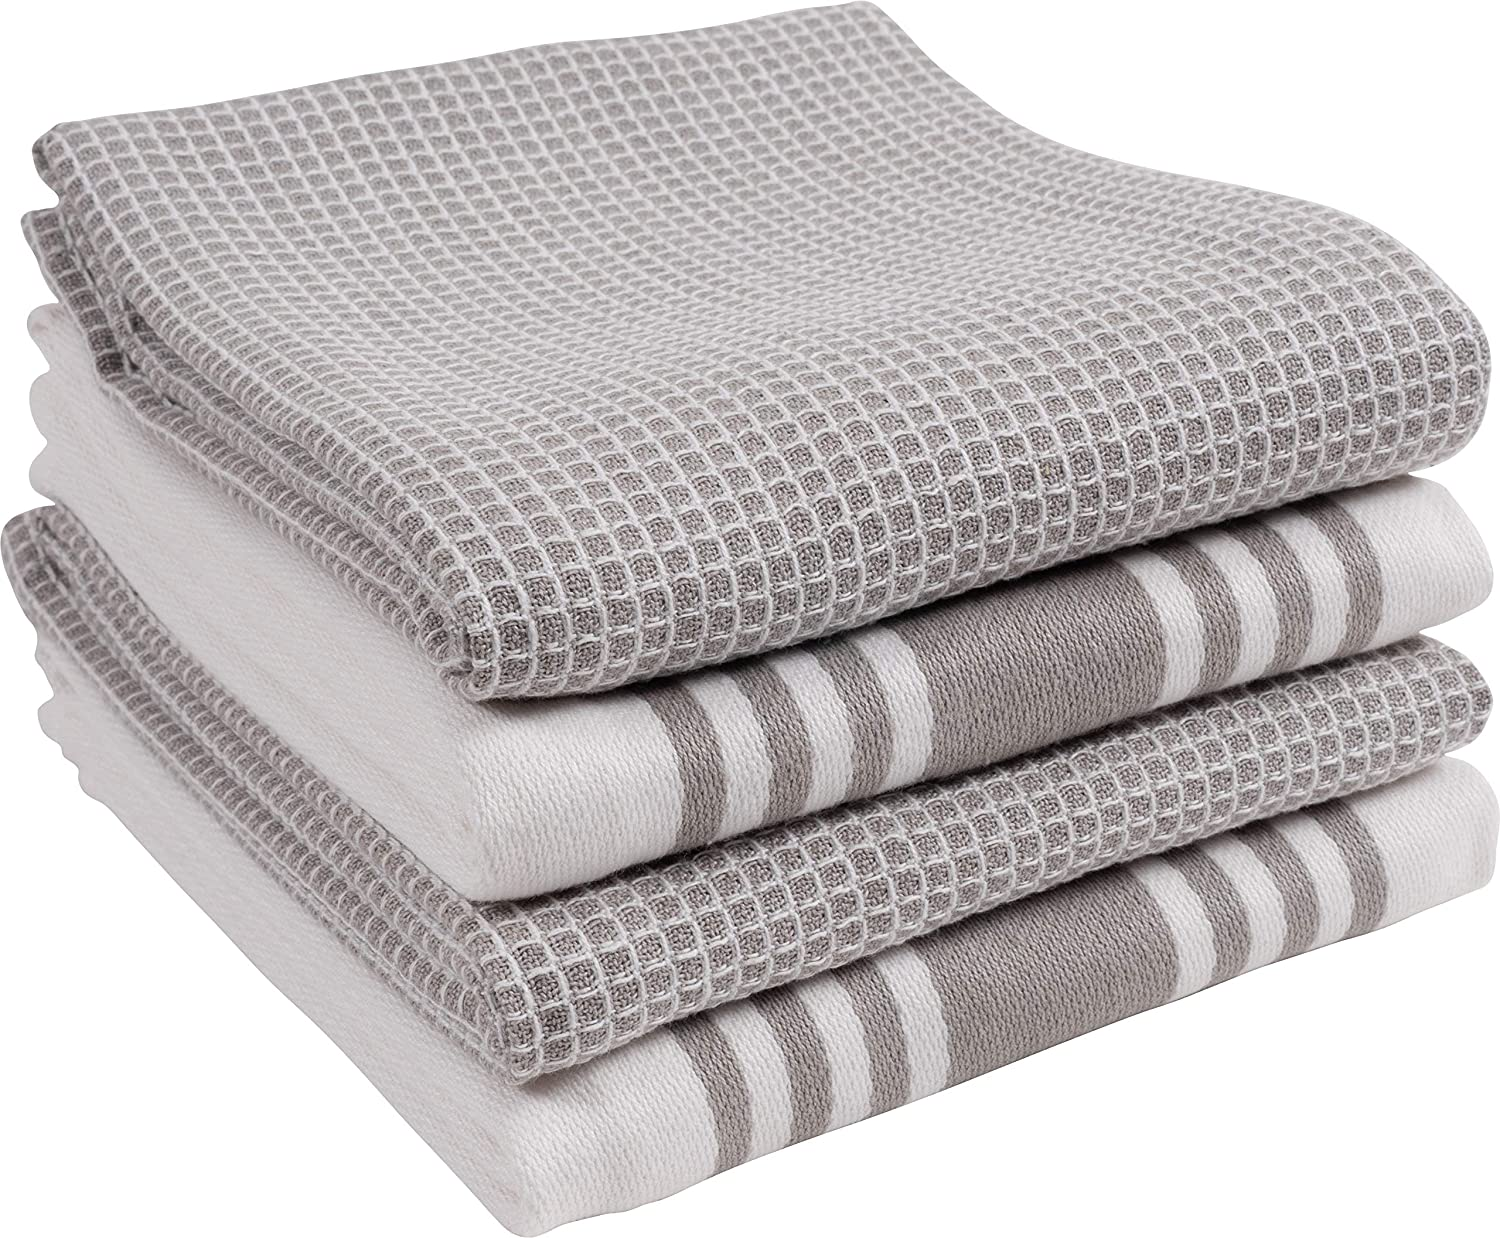 KAF Home Kitchen Towels Set of Max 41% OFF and Soft To 4 Durable Shipping included Absorbent